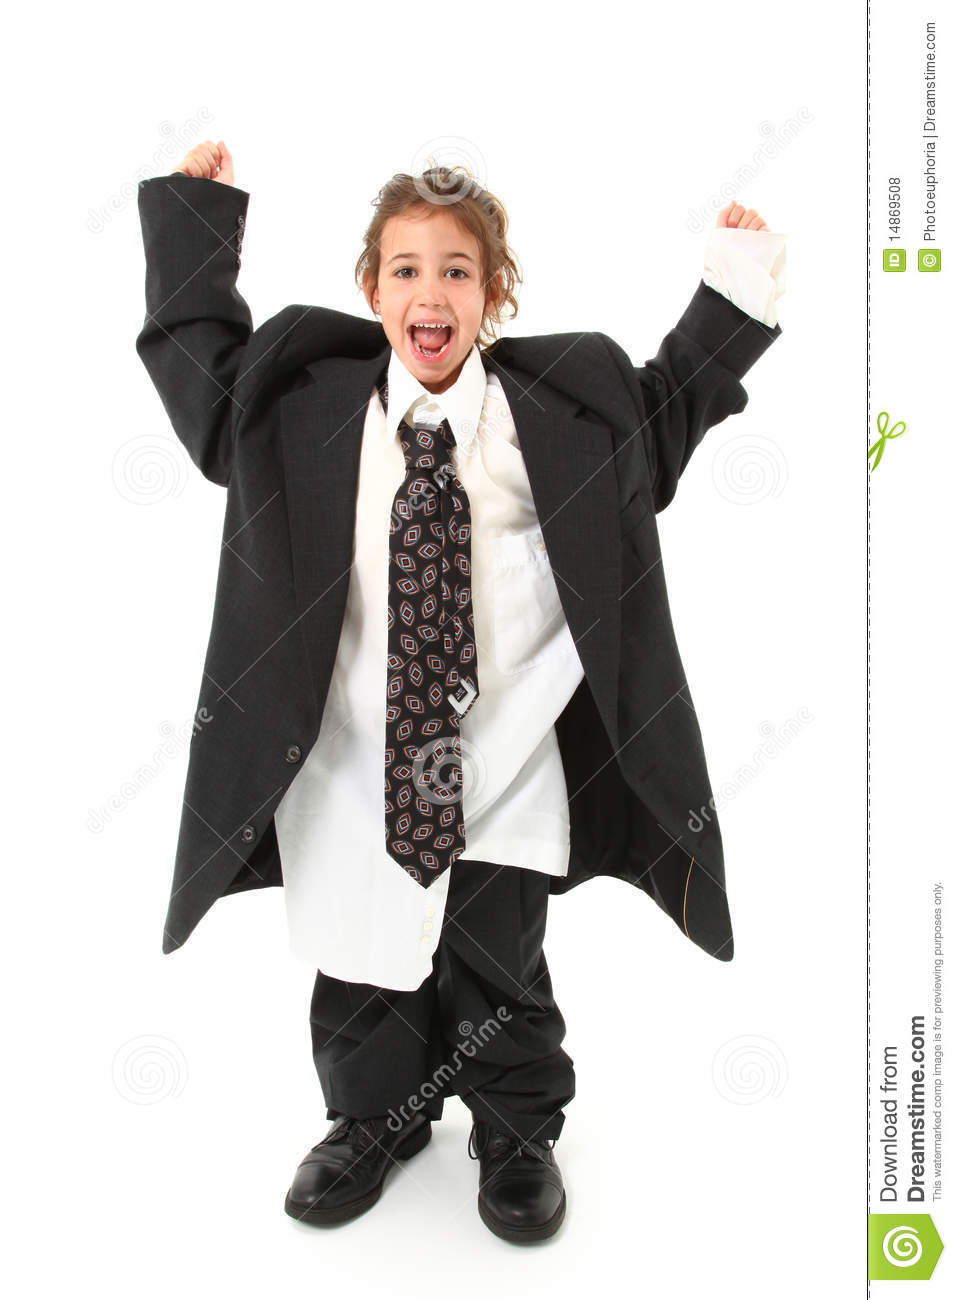 Child In Oversized Suit Royalty Free Stock Photos Image